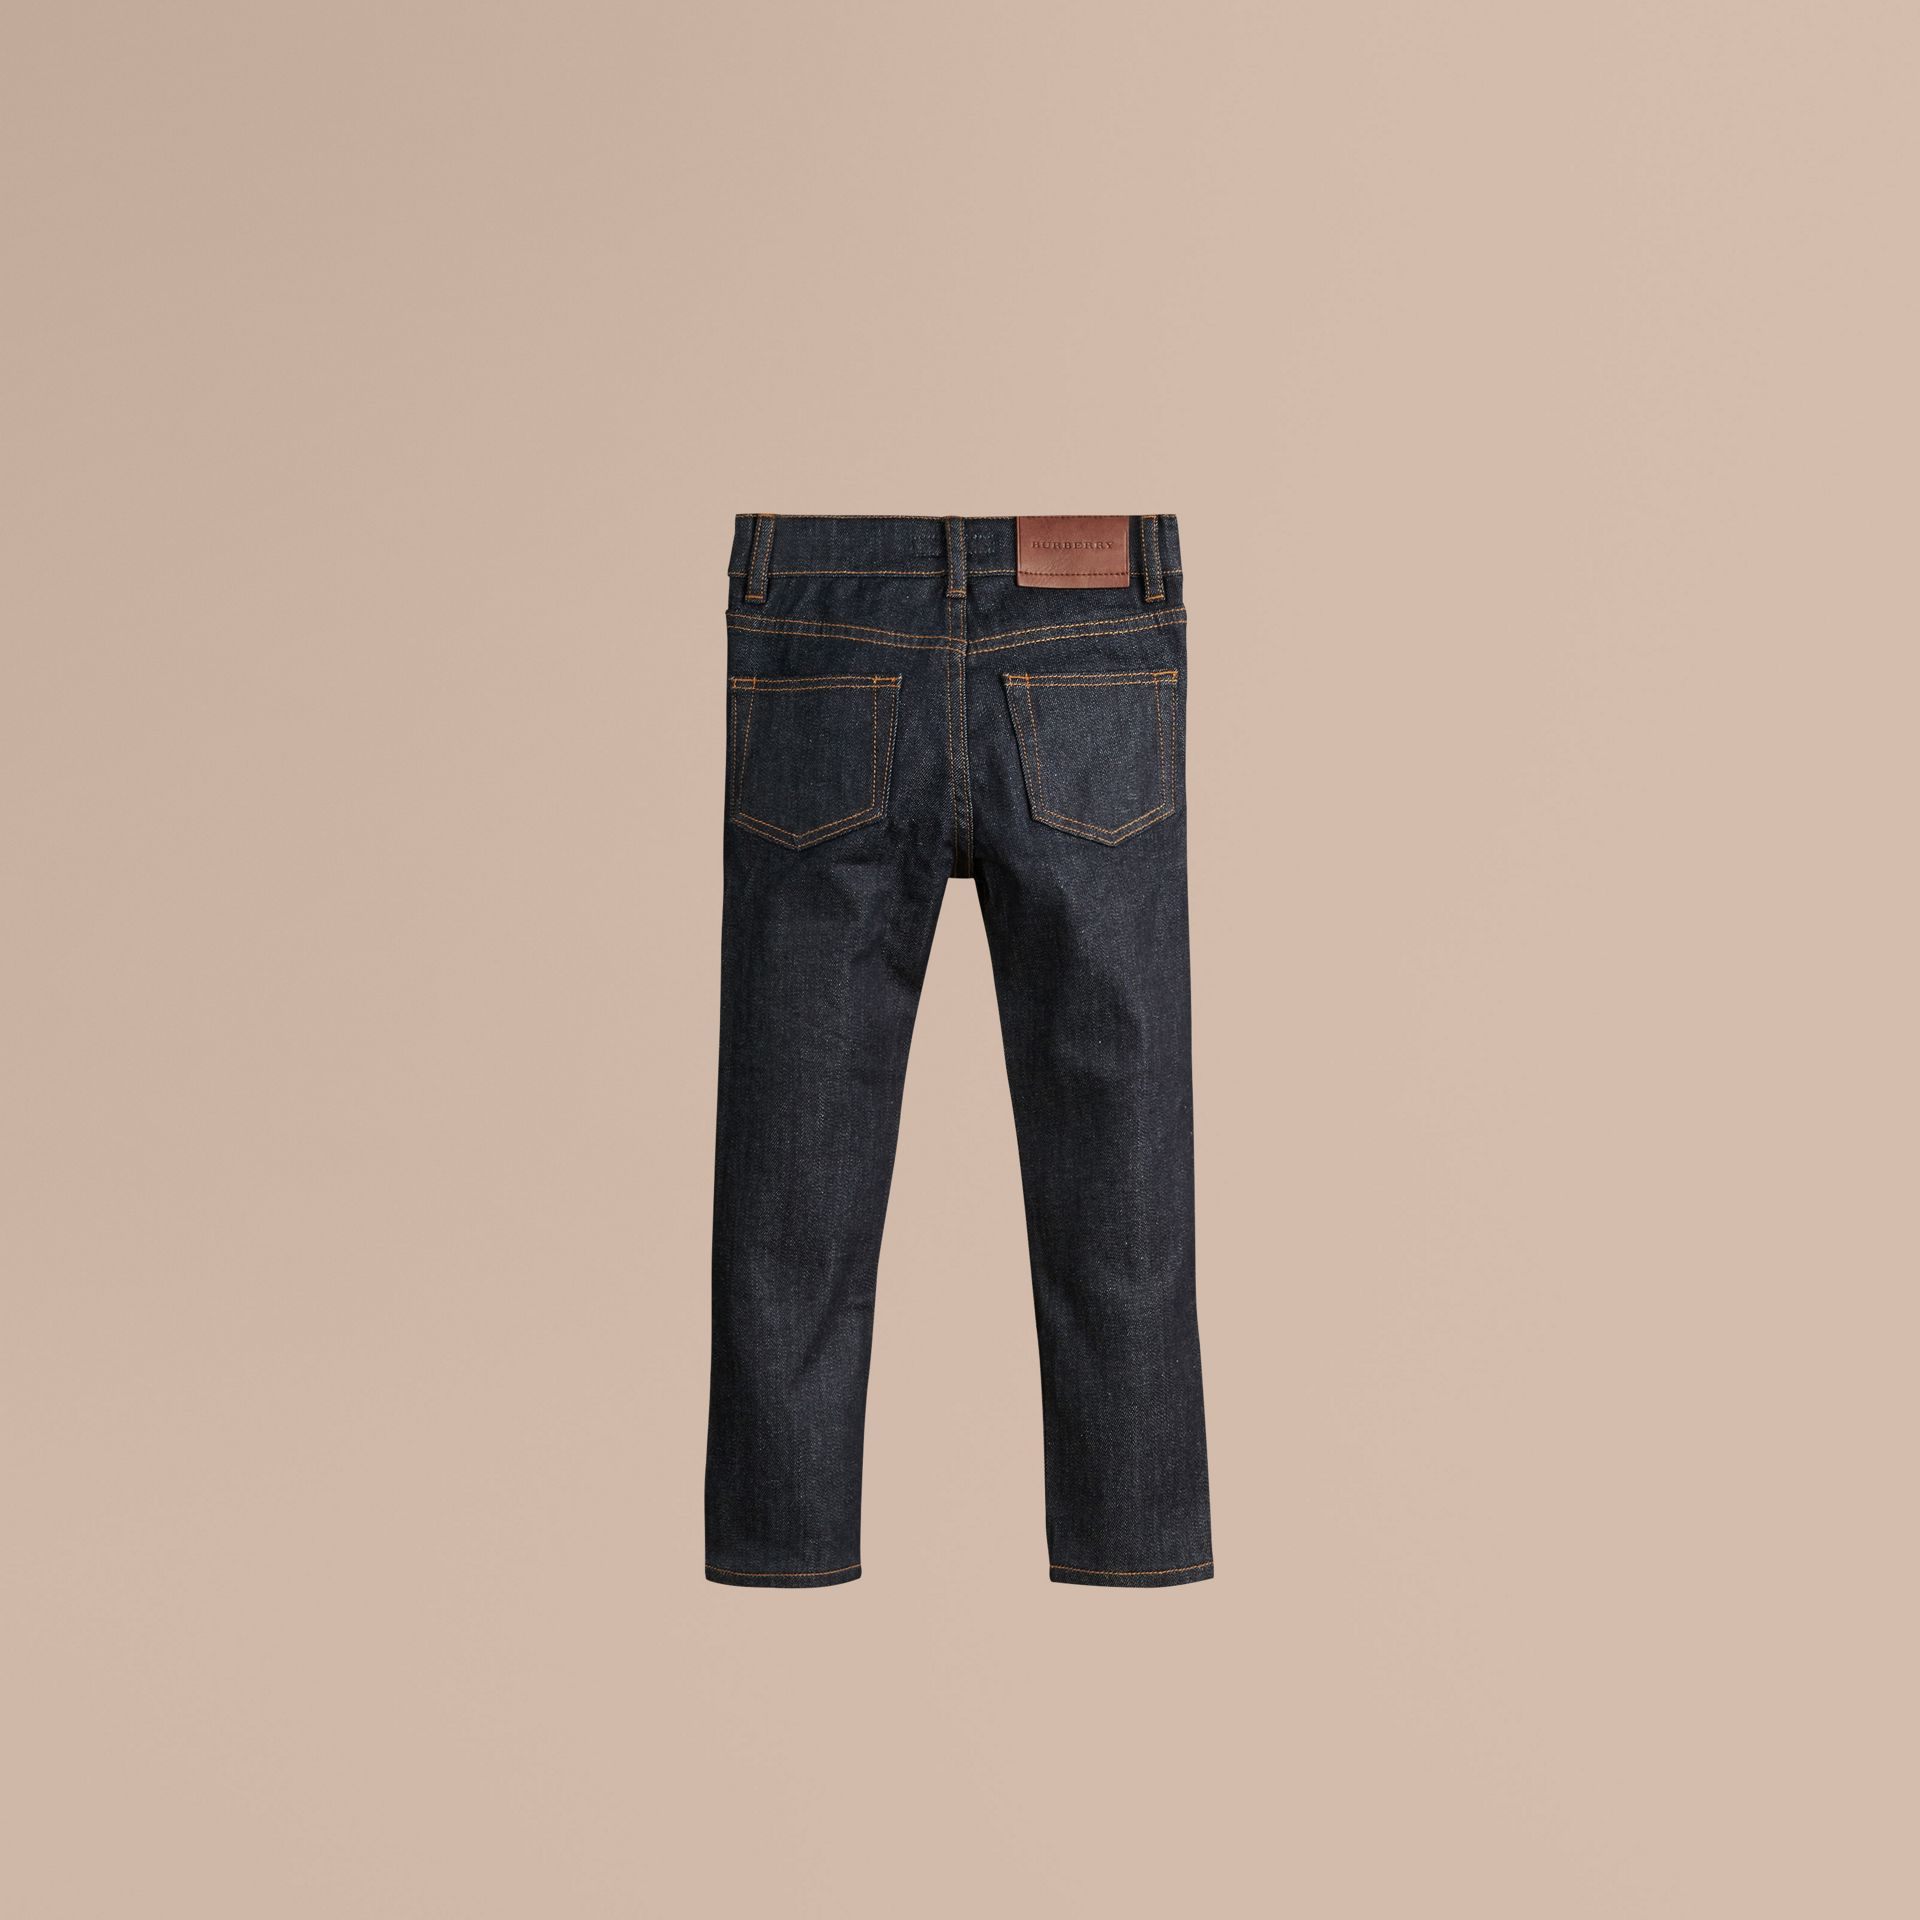 Relaxed Fit Indigo Jeans in Dark - Boy | Burberry - gallery image 3